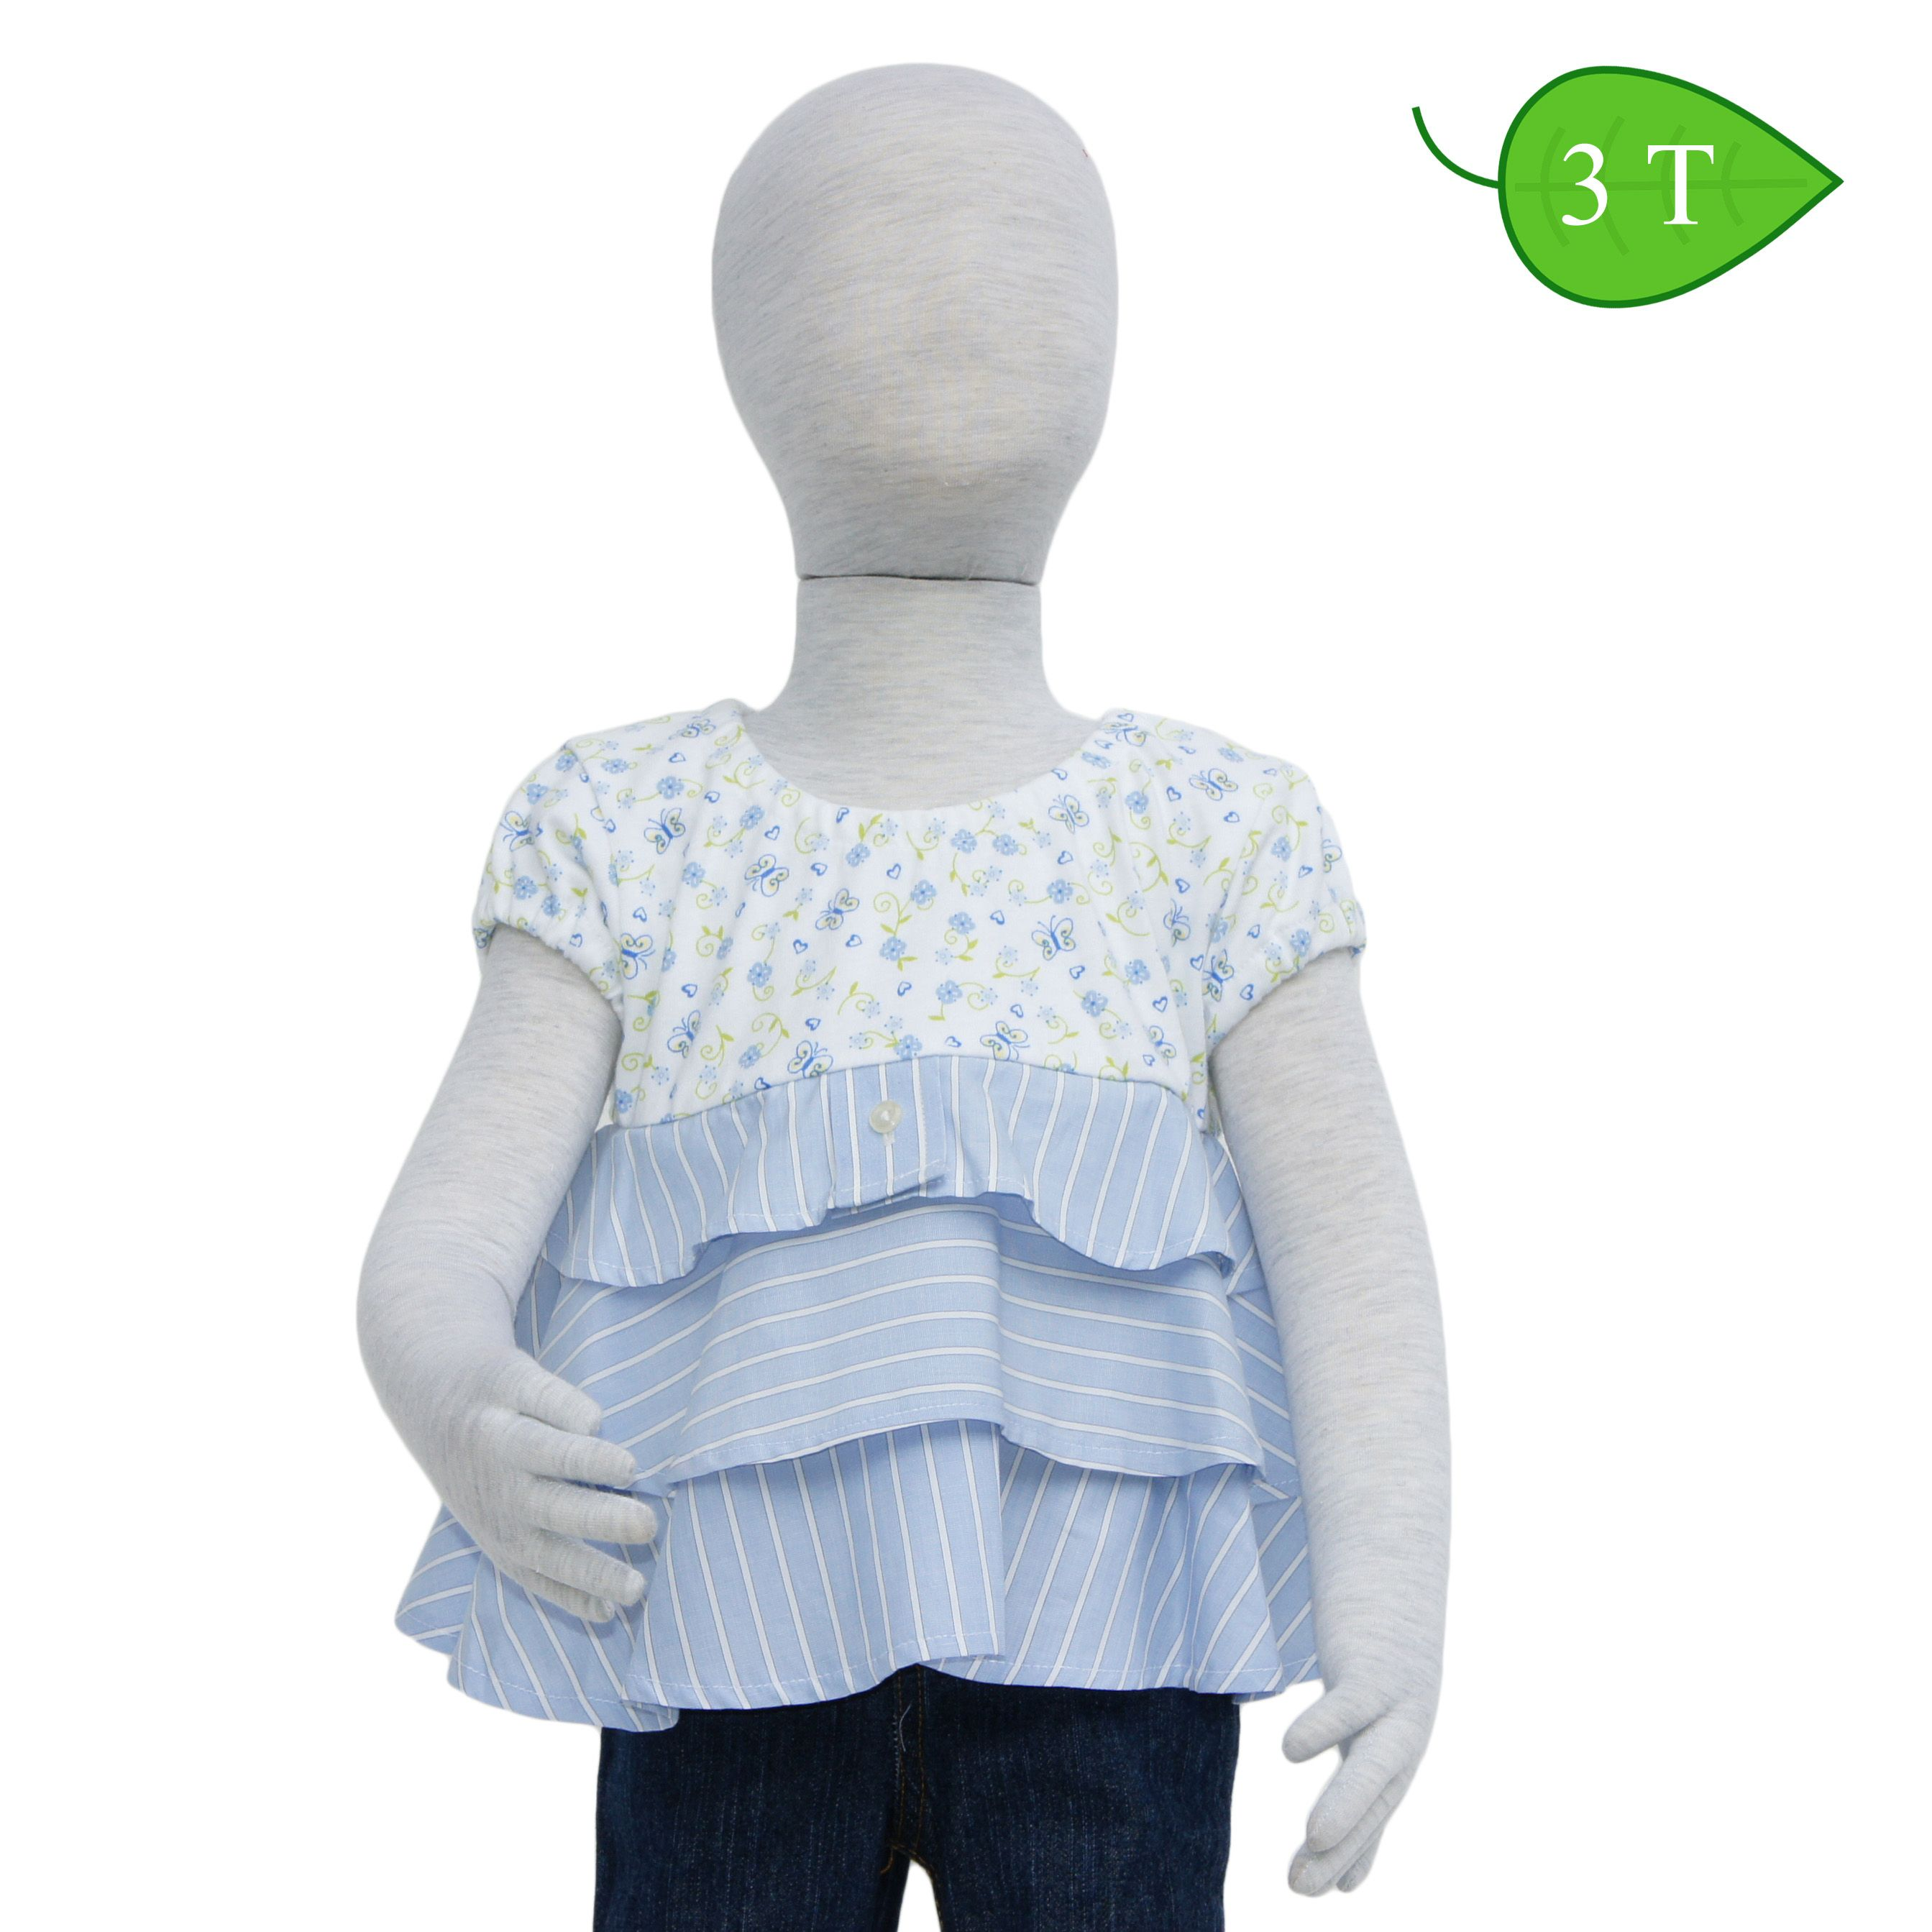 Flitter -- Cool and comfortable describe this top. The bodice is made from a cotton knit, has elasticized short sleeves, a crew neckline and a flirty 3 tiered bottom made from a light-weight woven cotton blend. ($15)